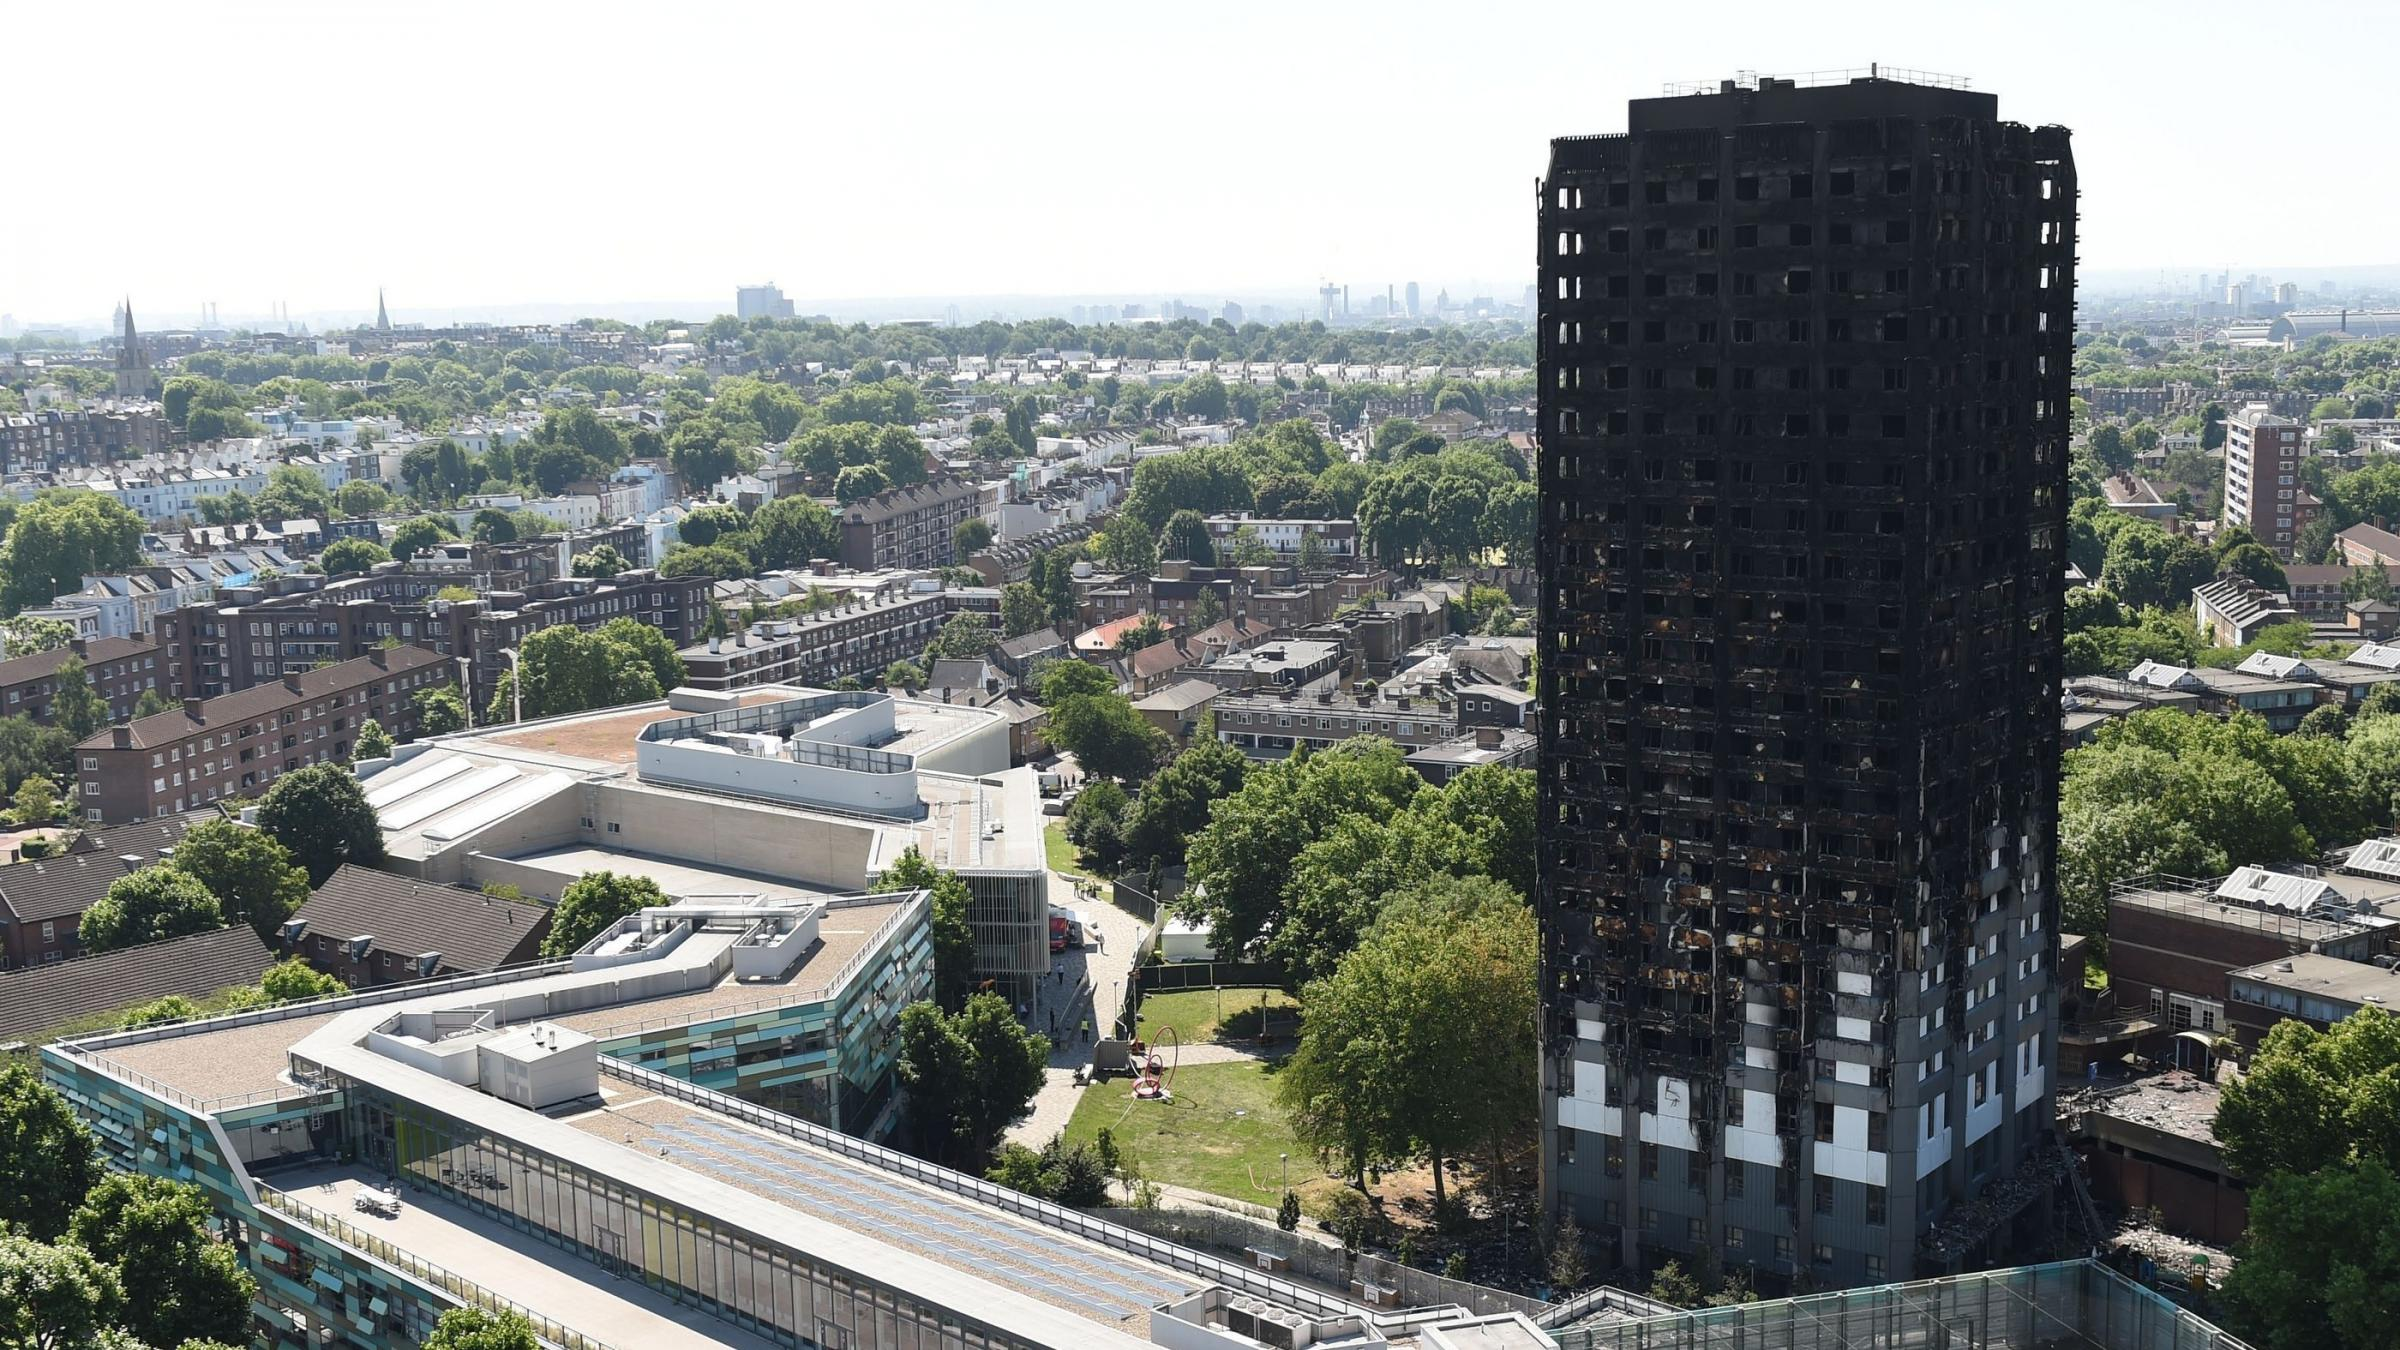 Presumed death toll in London tower blaze rises to 79